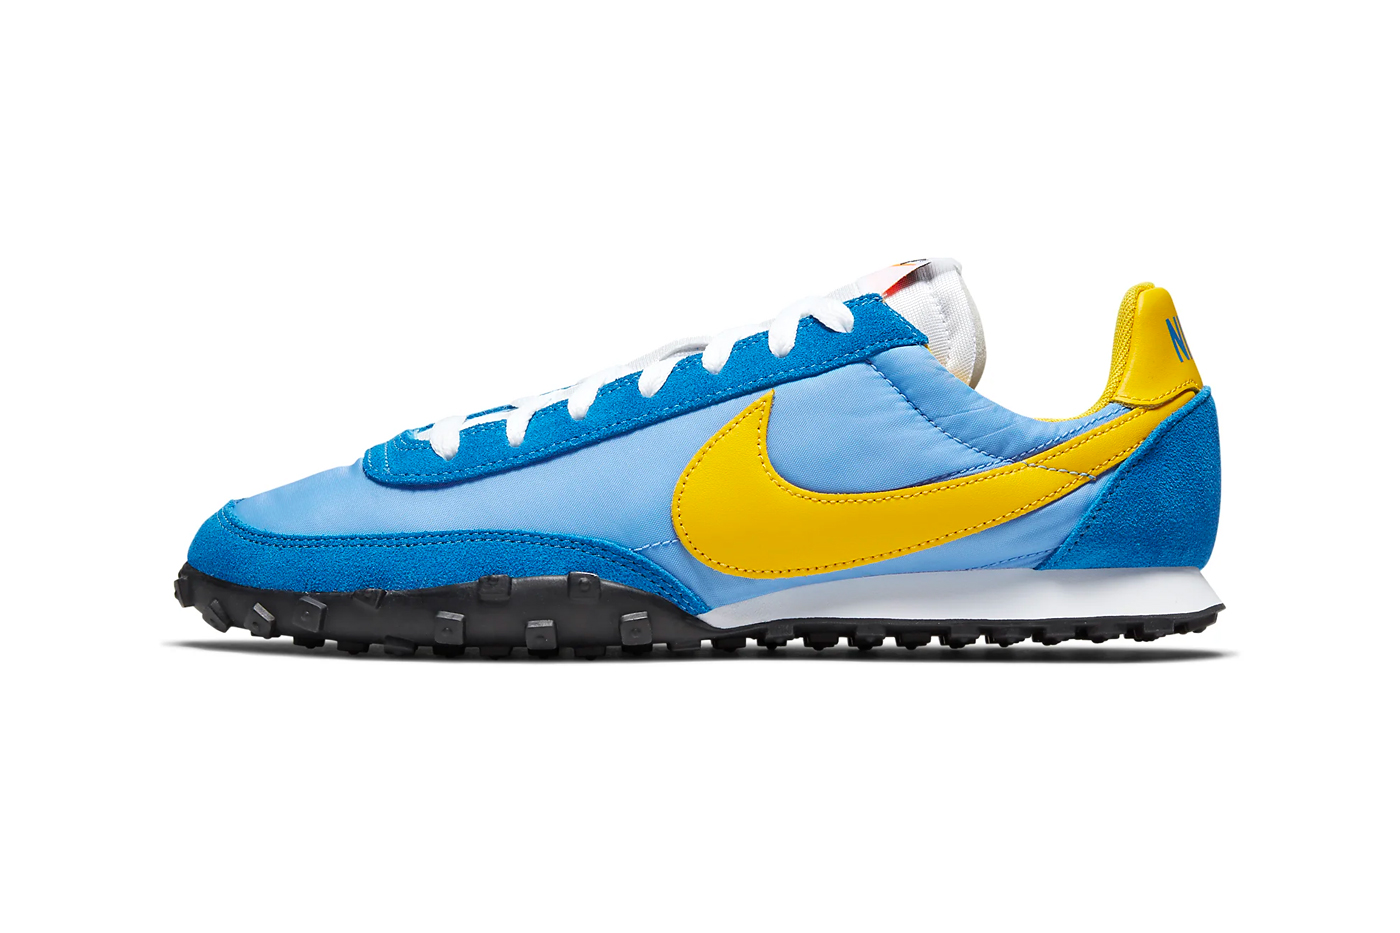 Nike Waffle Racer Battle Blue Release Info sneakers shoes university blue amarillo white black CN5449-400 1977 retro vintage